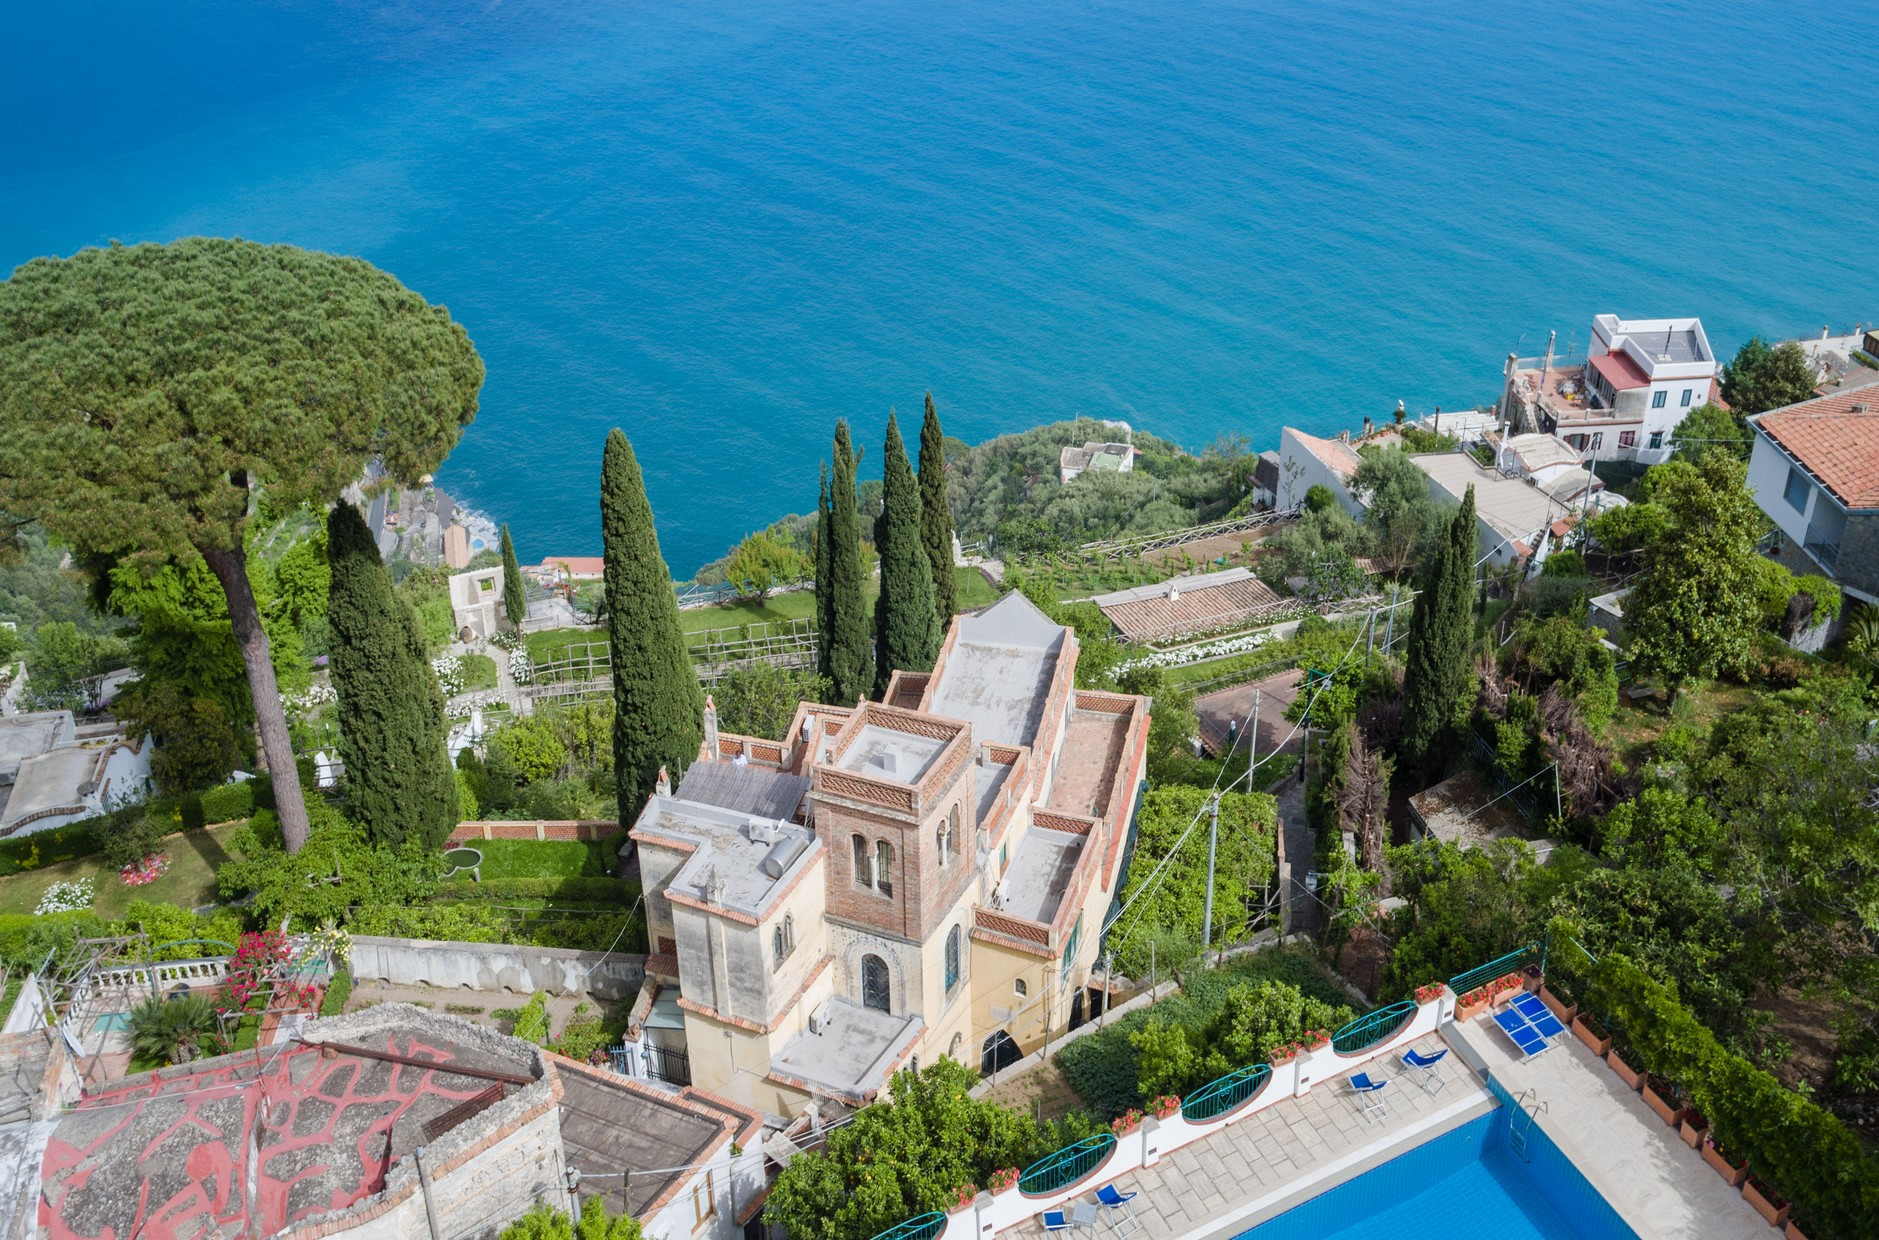 EXTRAORDINARY HISTORIC VILLA IN THE HEART OF RAVELLO